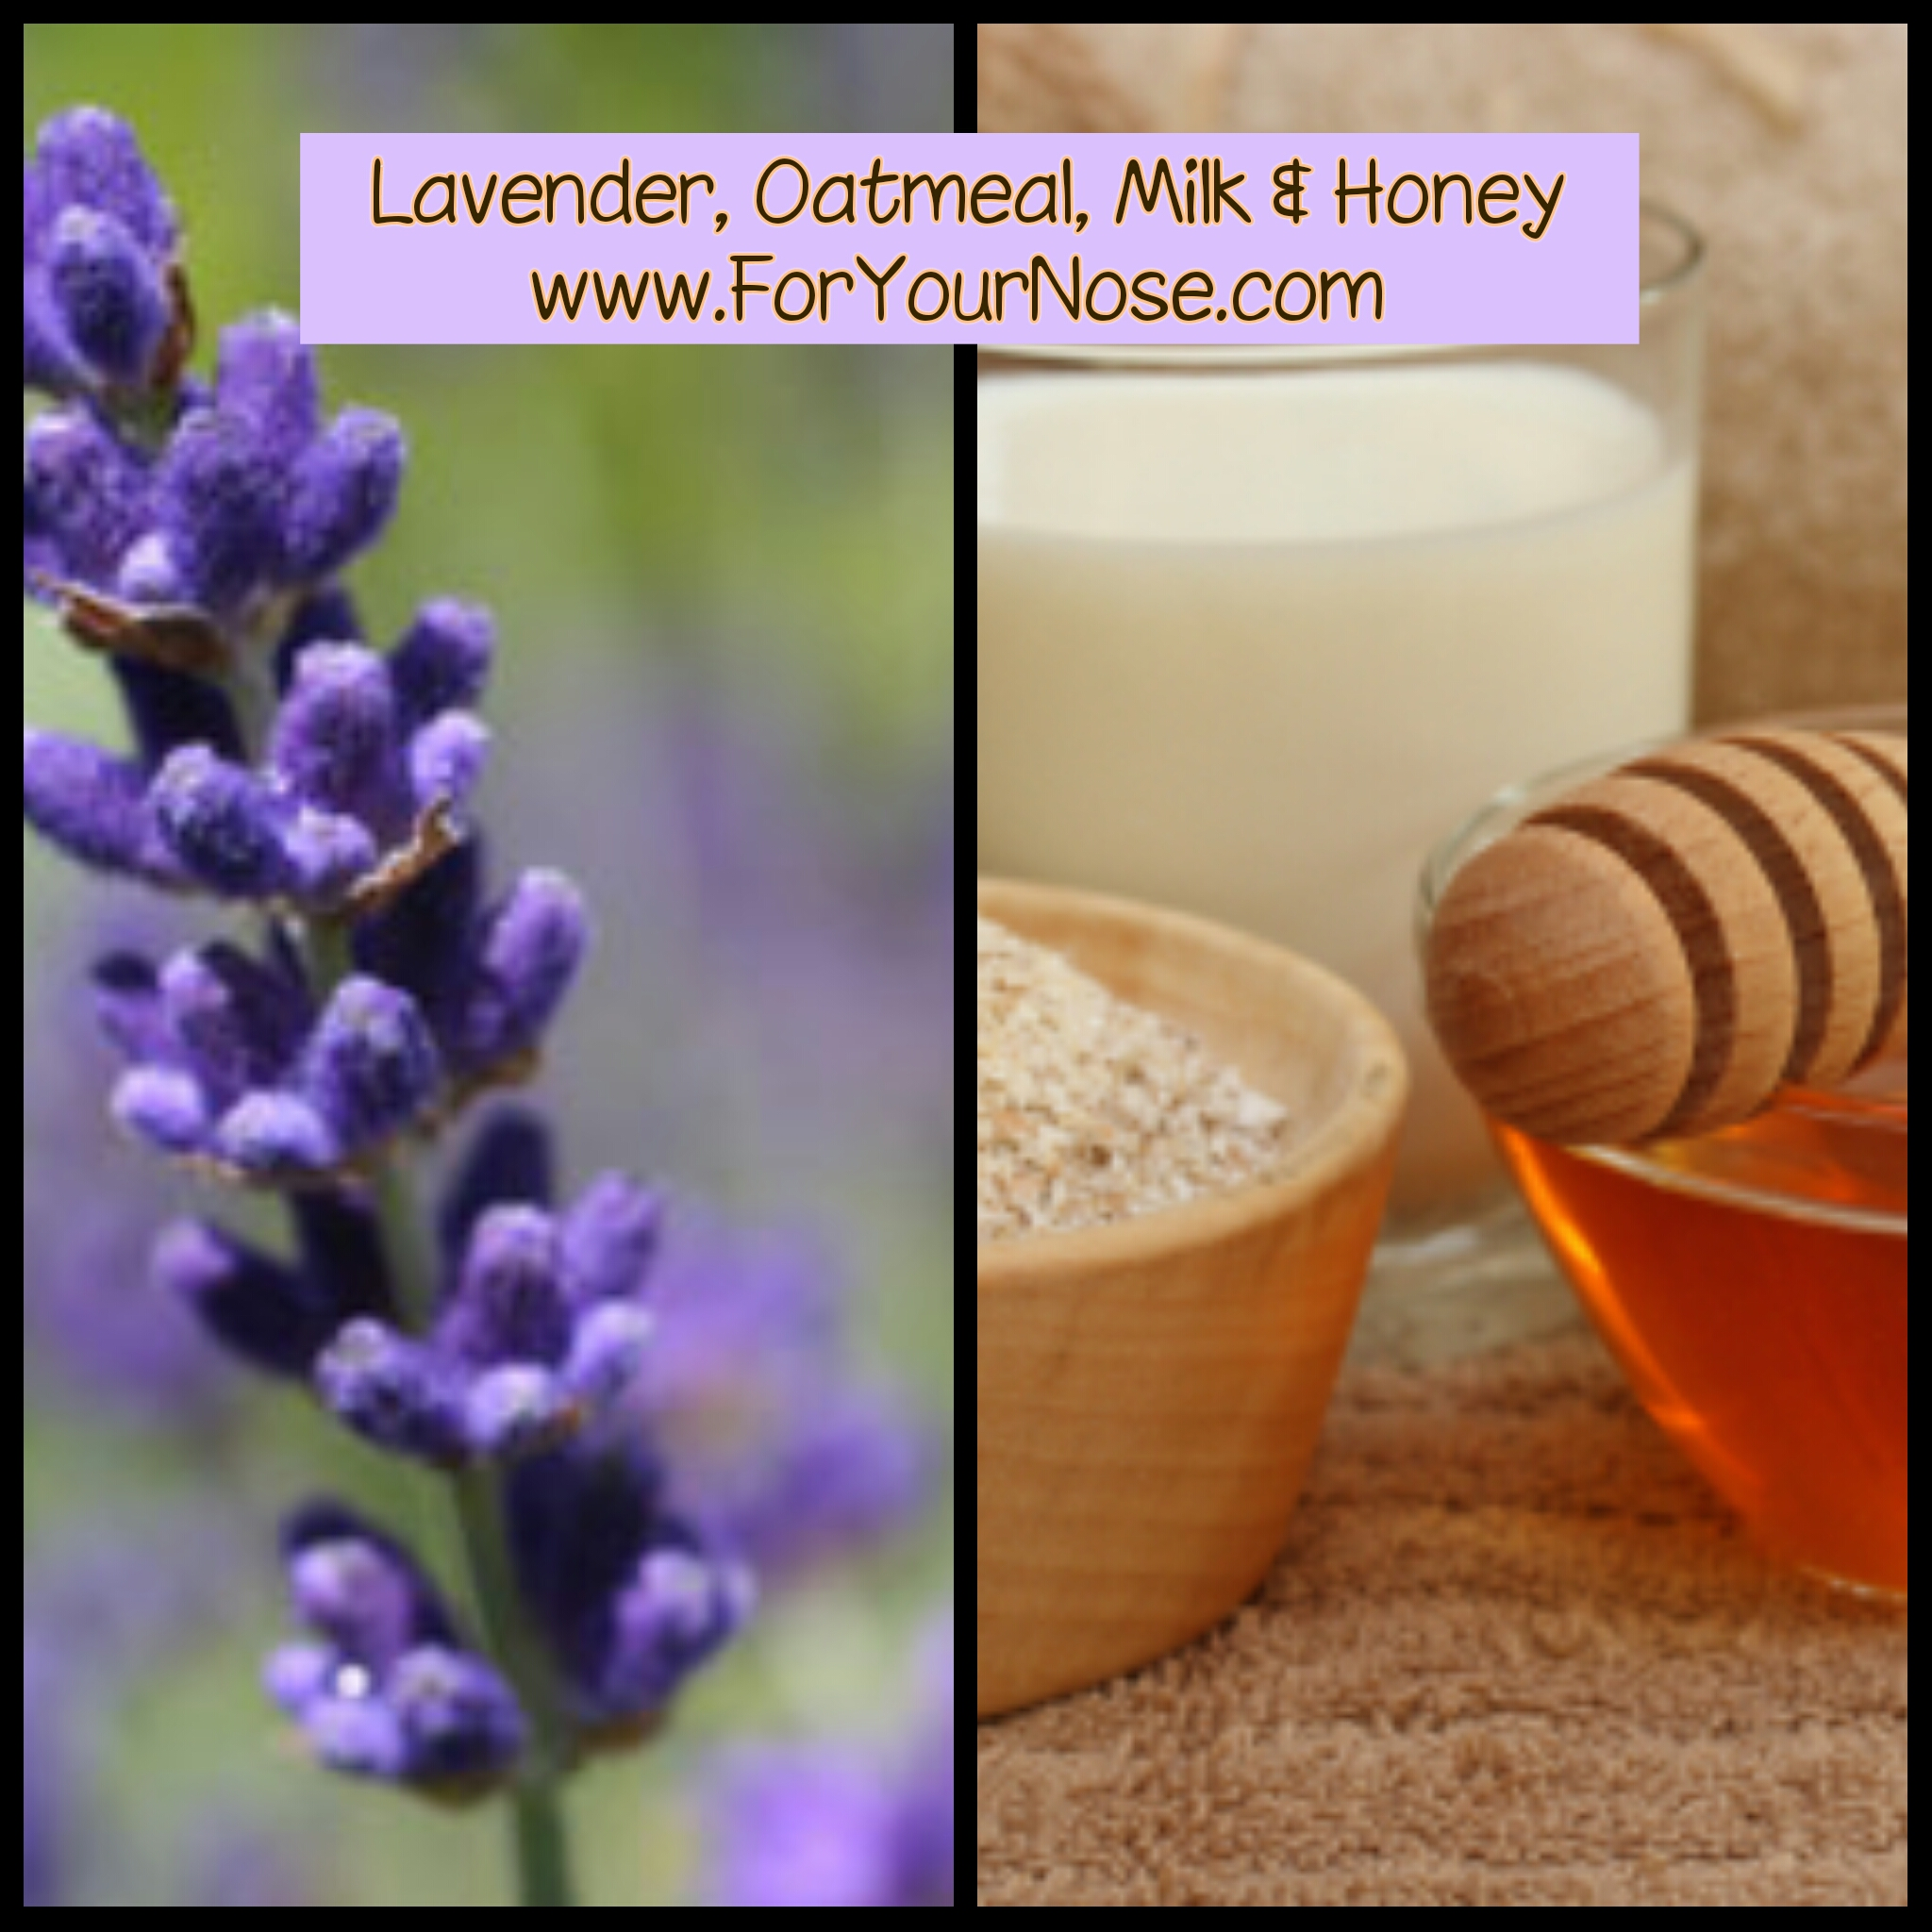 lavender, oatmeal, milk & honey fragrance